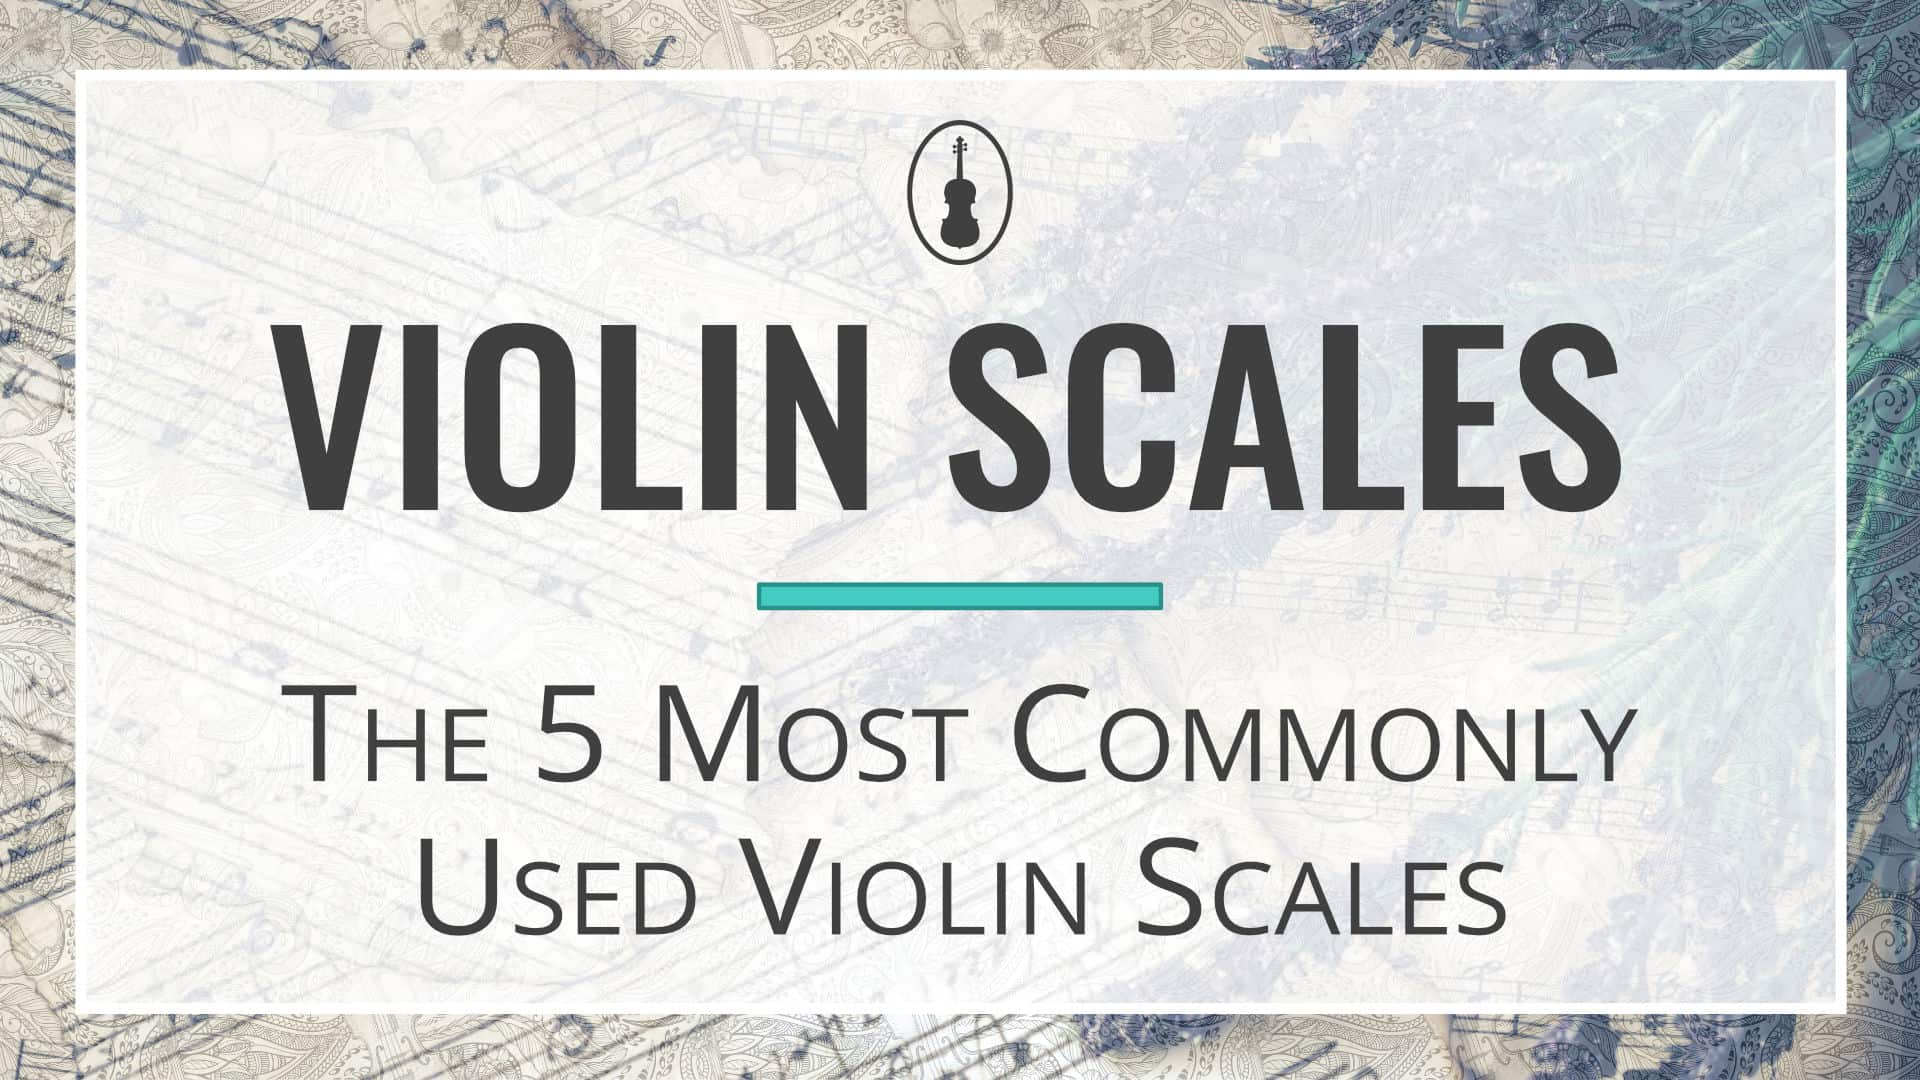 Violin-Scales-The-5-Most-Commonly-Used-Violin-Scales